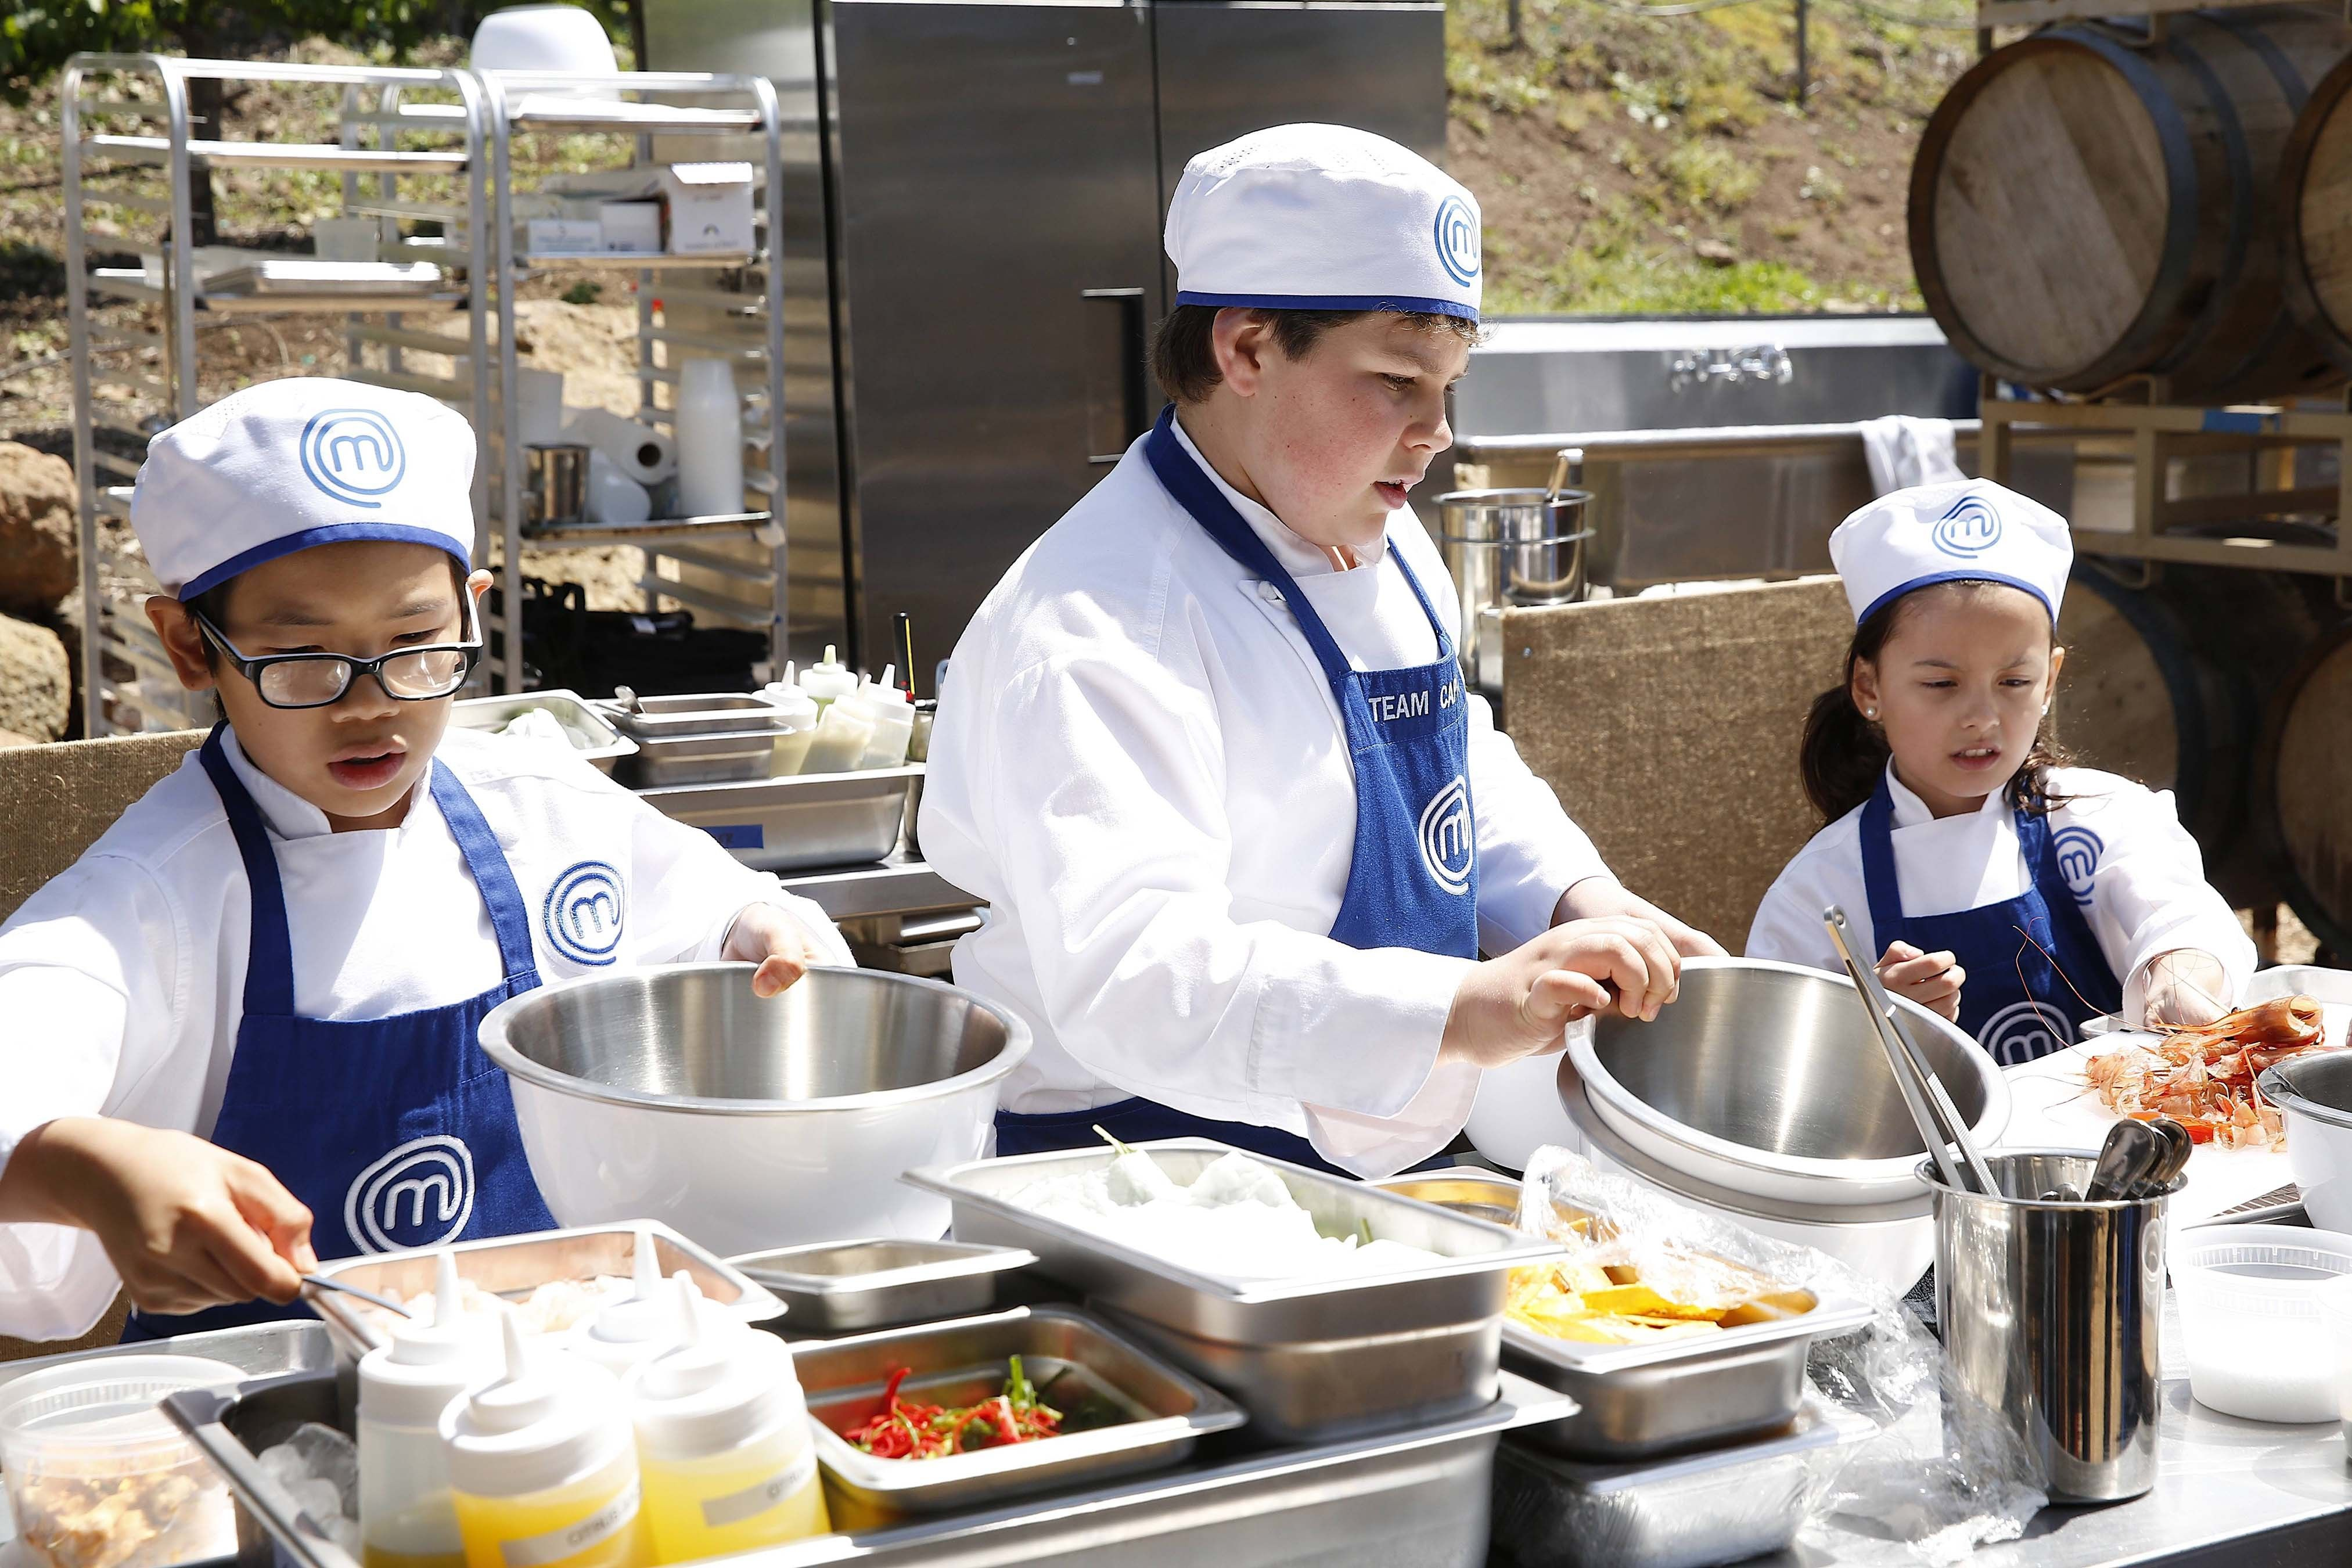 Contestants sam sean and oona prepare their meals in a